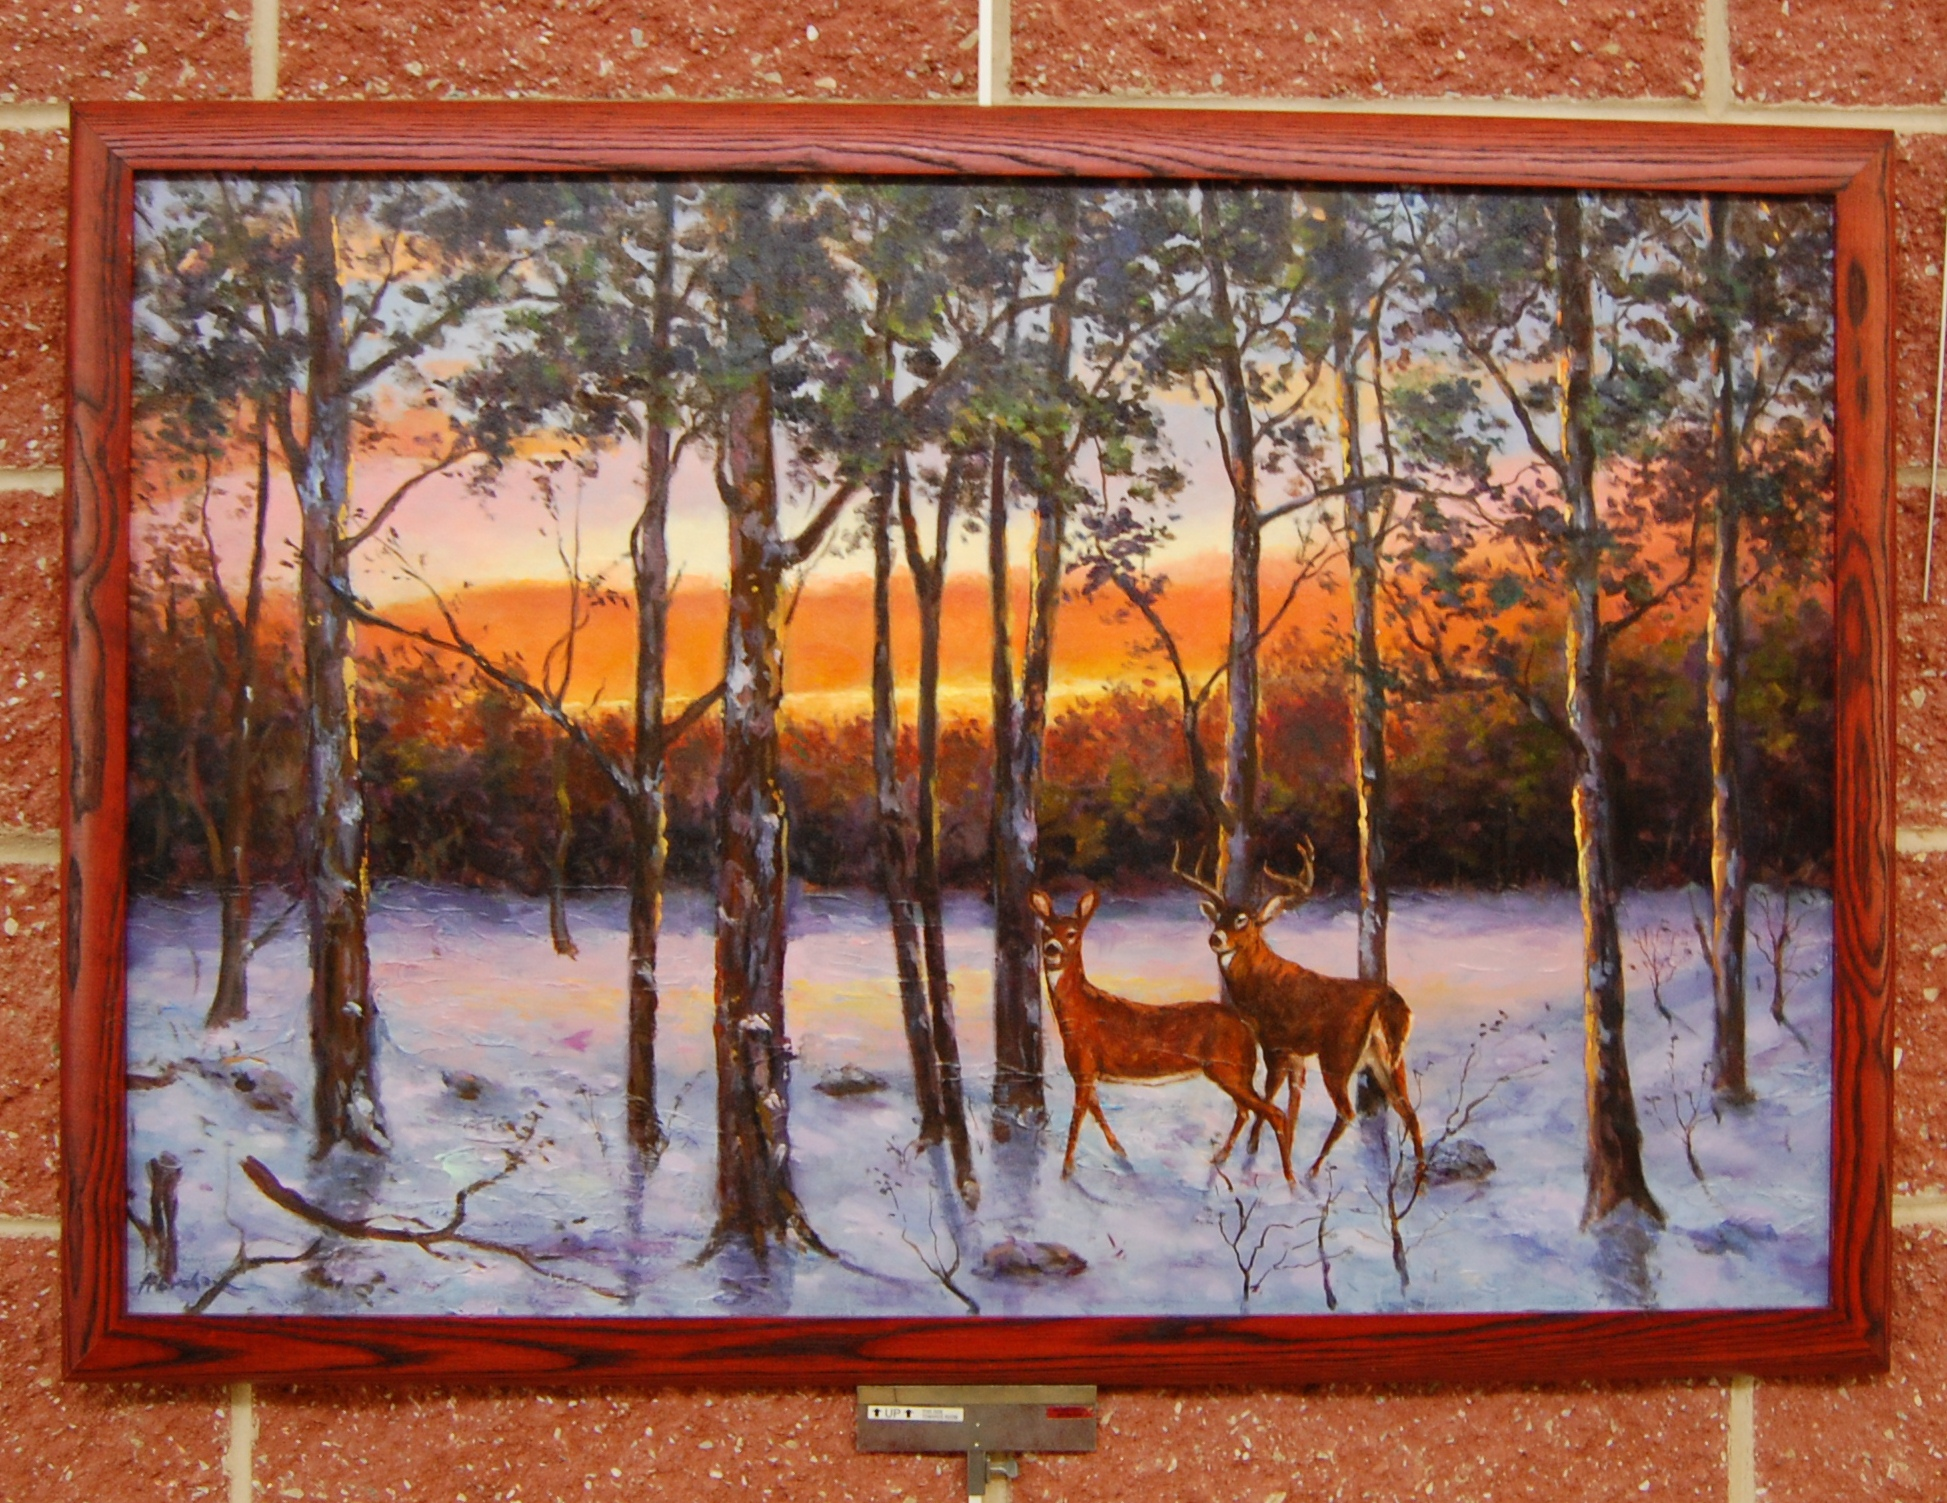 Sunset with Deer - SOLD